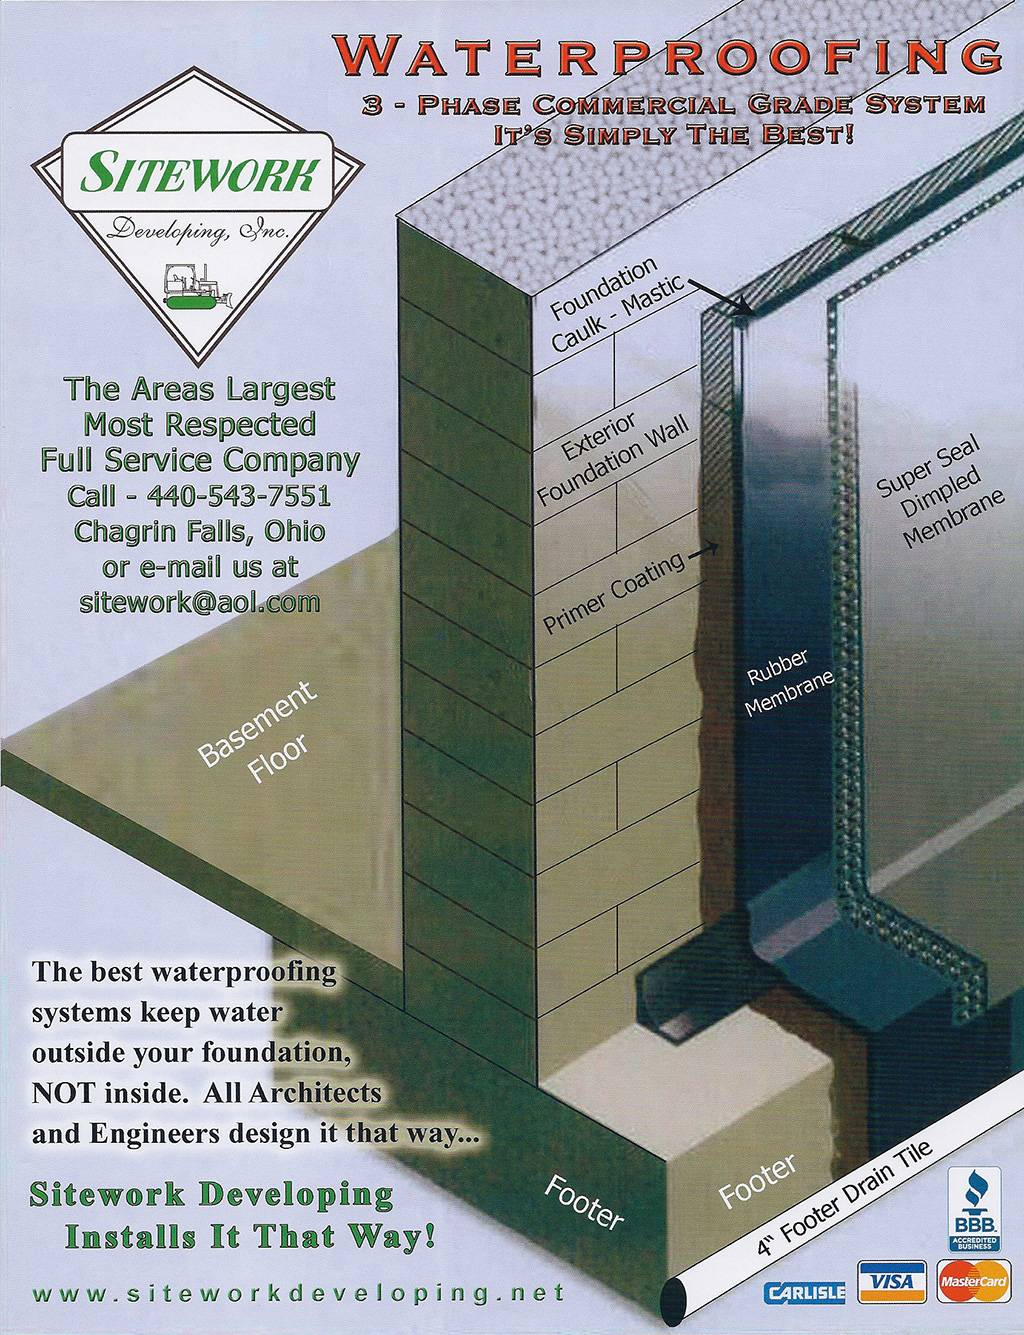 Waterproofing Flyer